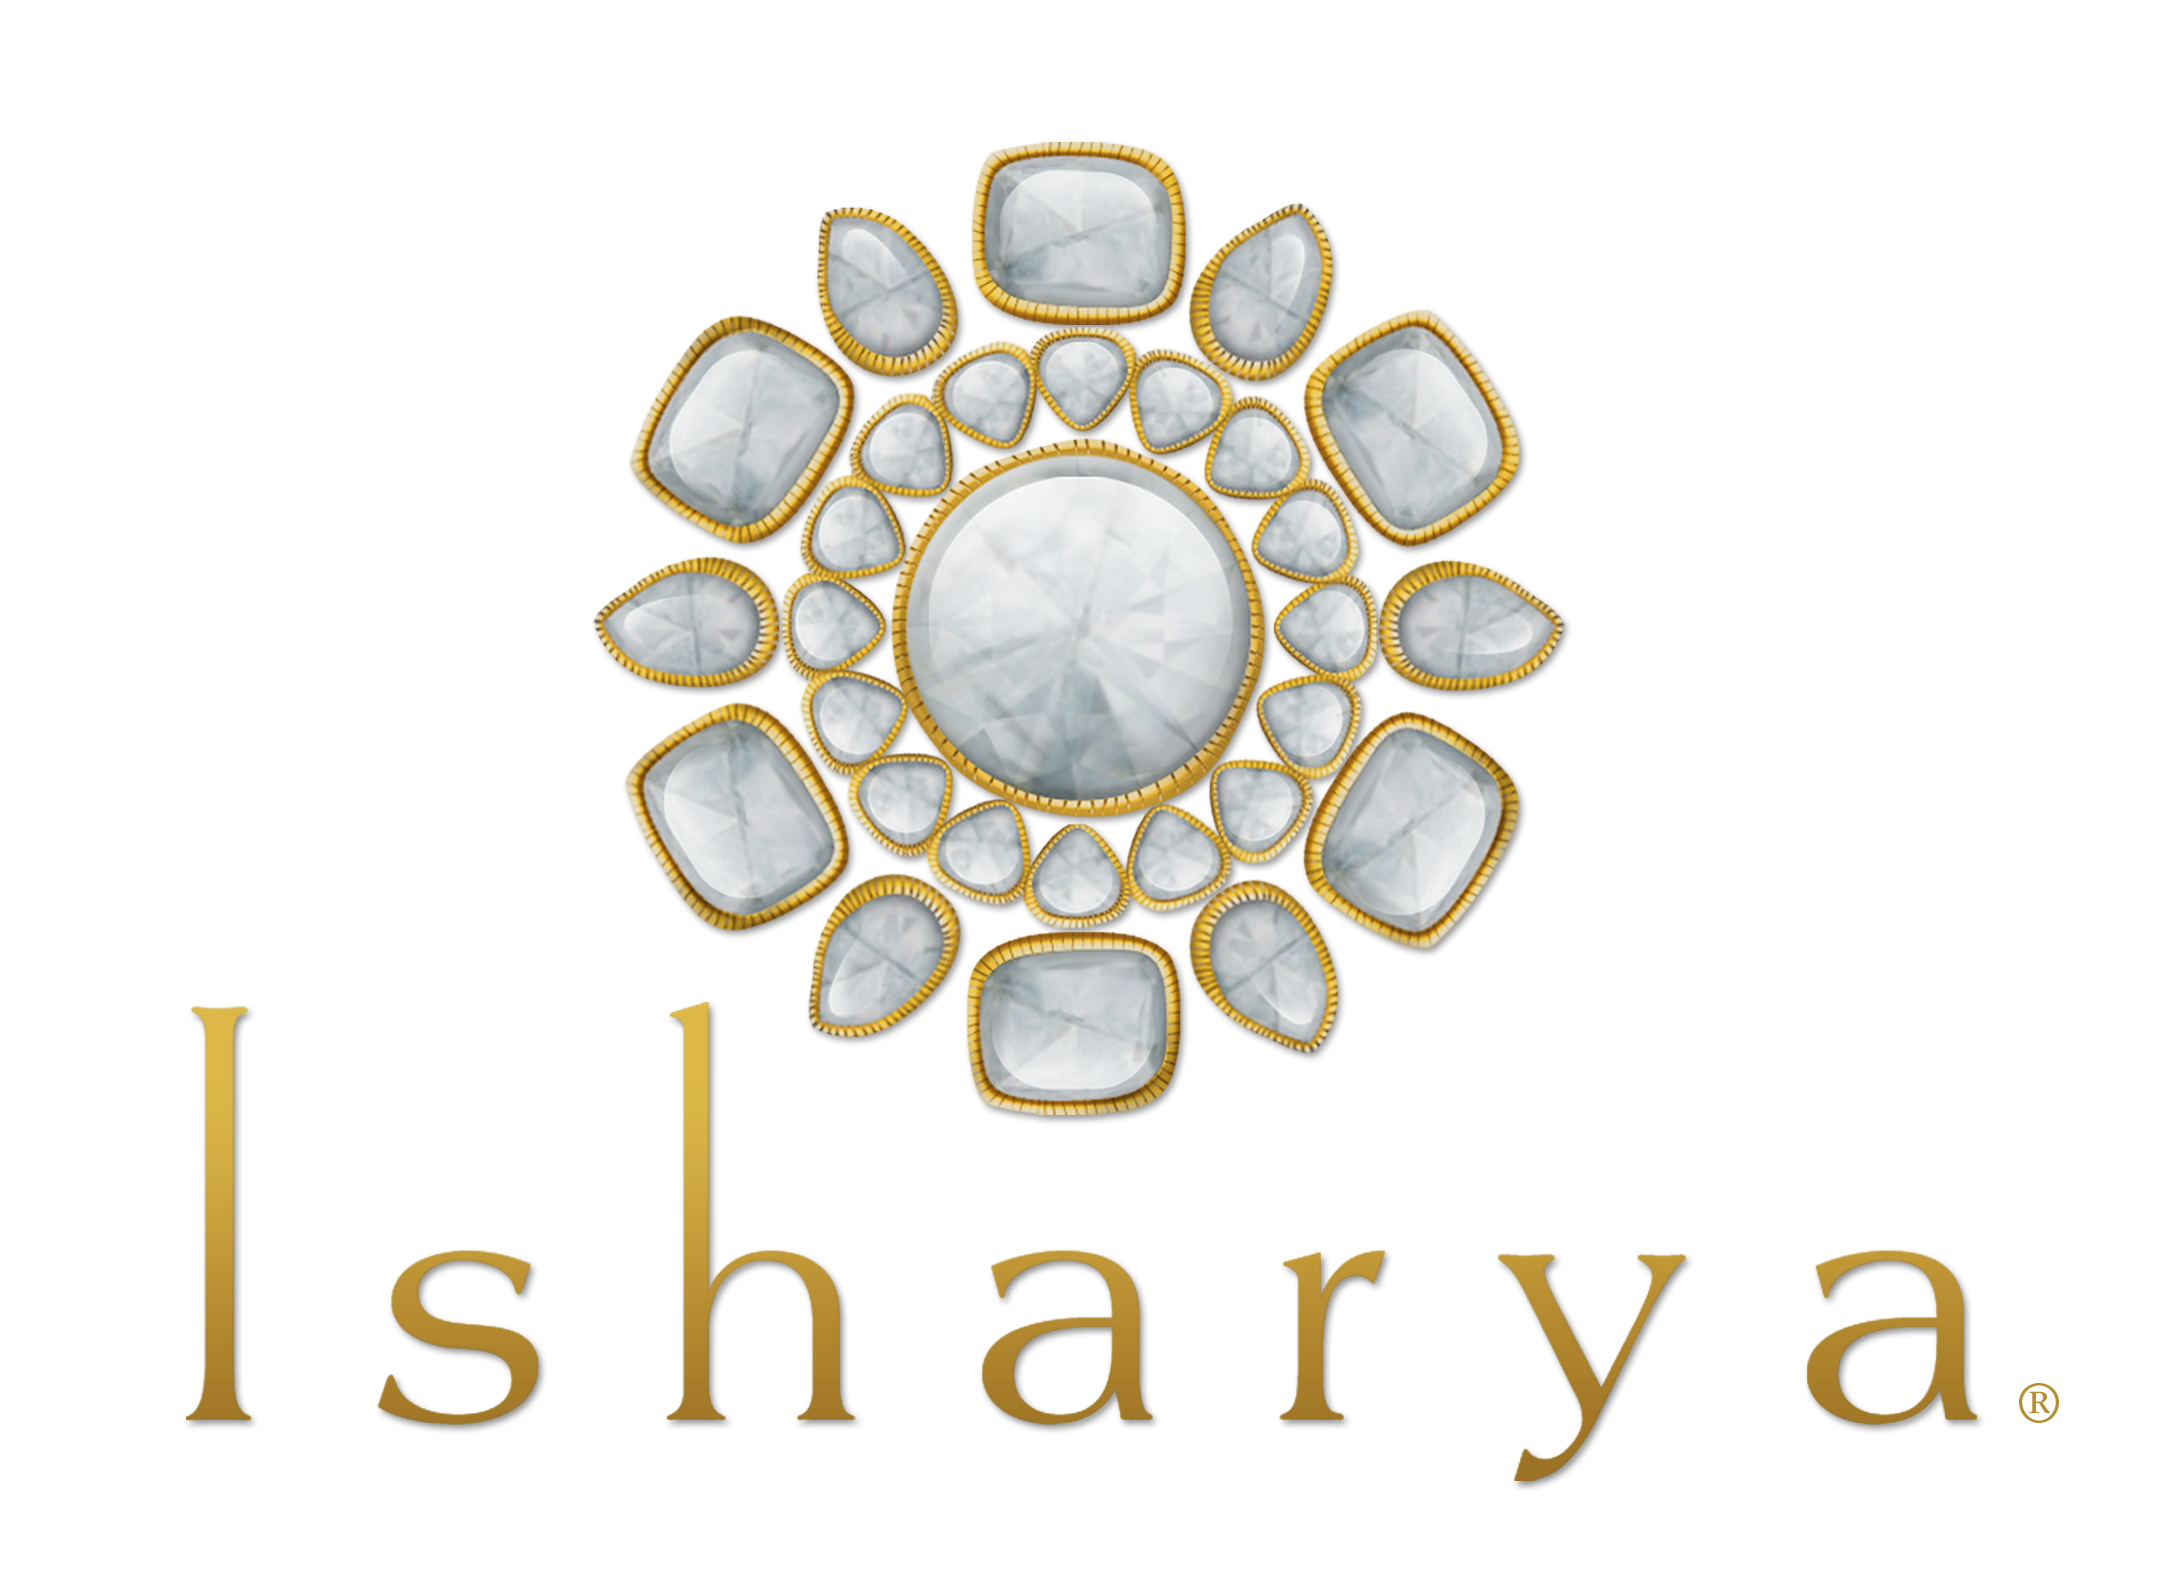 Isharya Logo Wallpaper